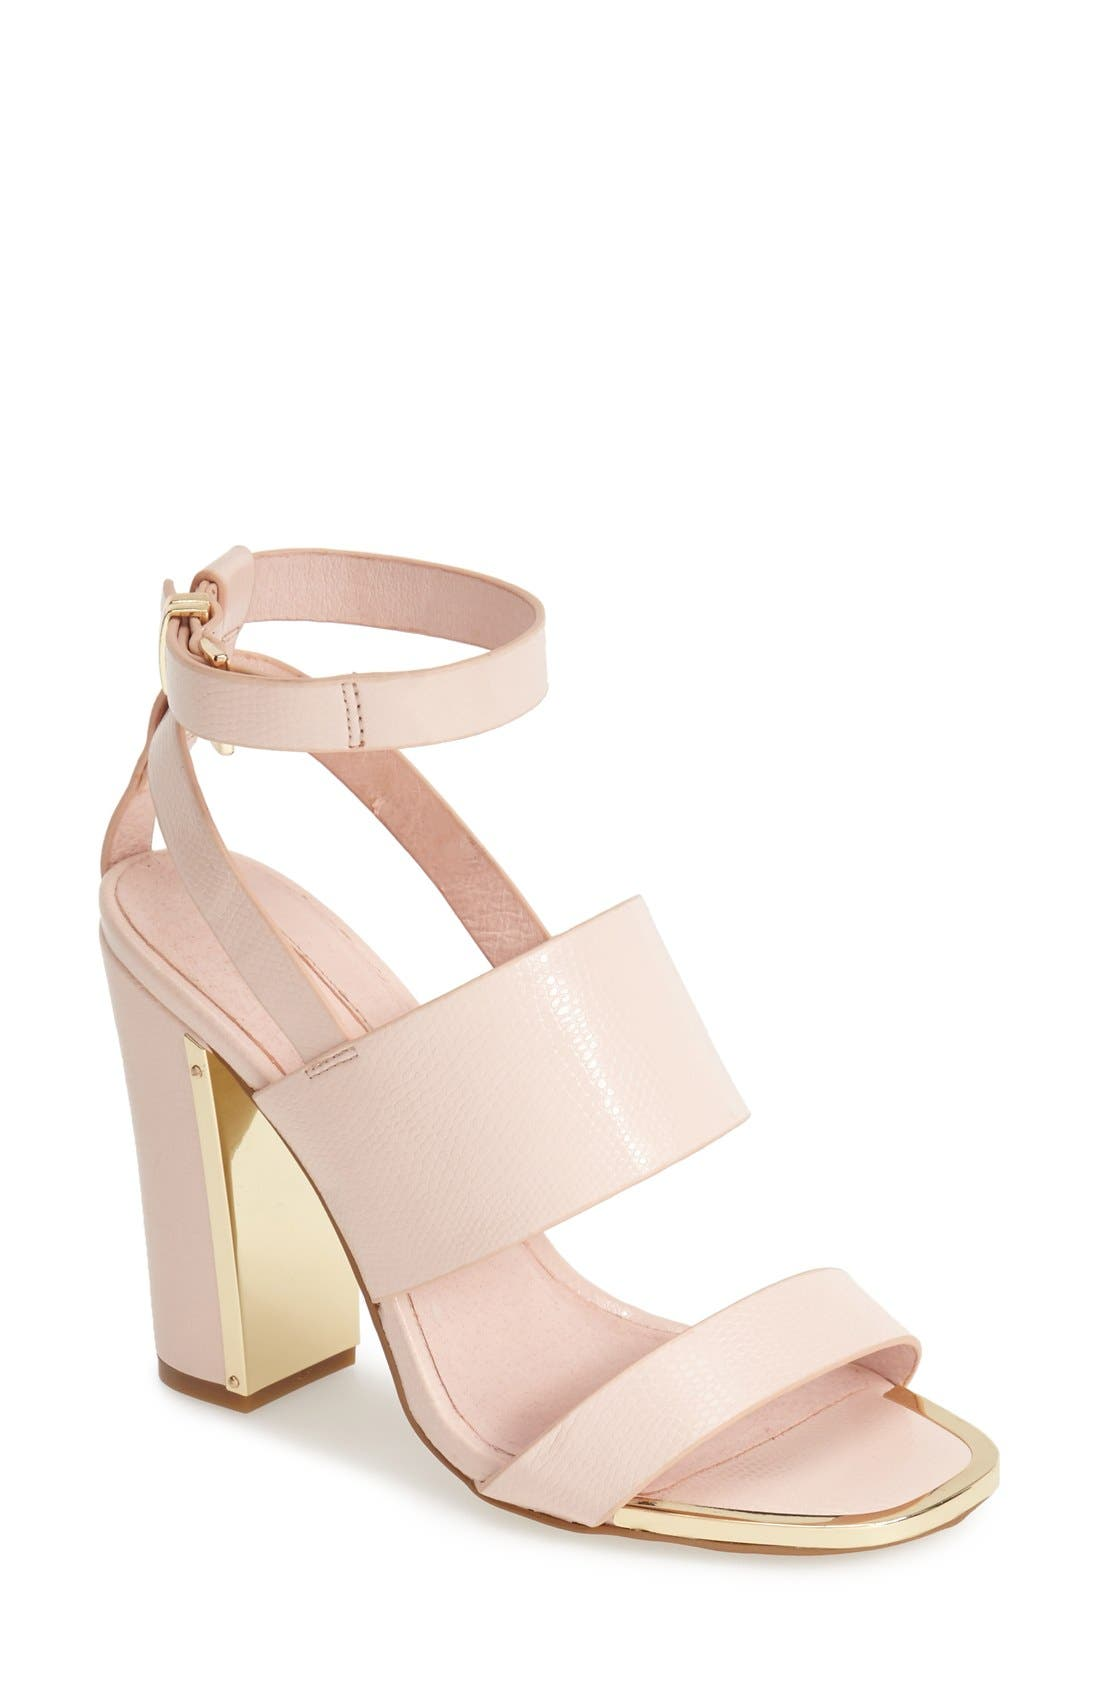 Alternate Image 1 Selected - Topshop 'Riot' Lizard Embossed Ankle Strap Sandals (Women)